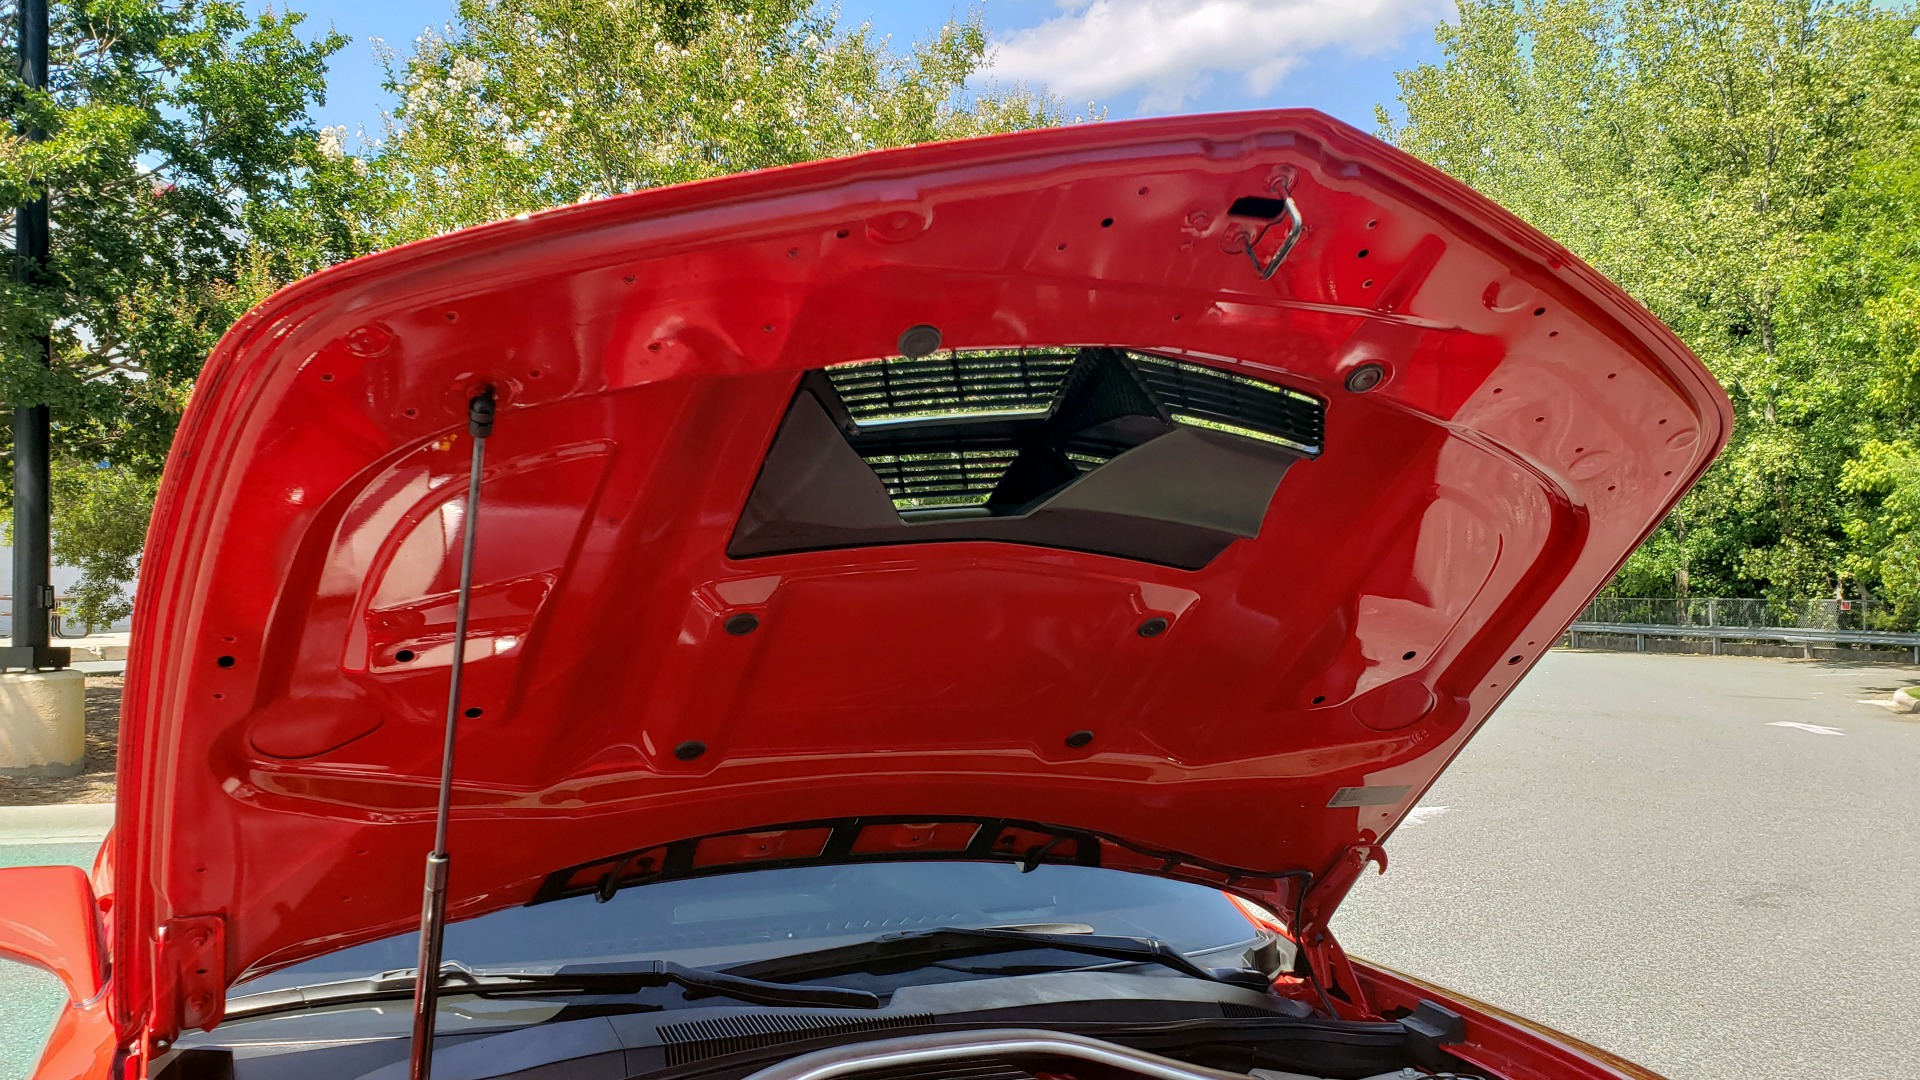 Used 2013 Chevrolet CAMARO ZL1 / 6.2L SUPERCHARGED 580HP / 6-SPD AUTO / NAV / REARVIEW for sale Sold at Formula Imports in Charlotte NC 28227 23